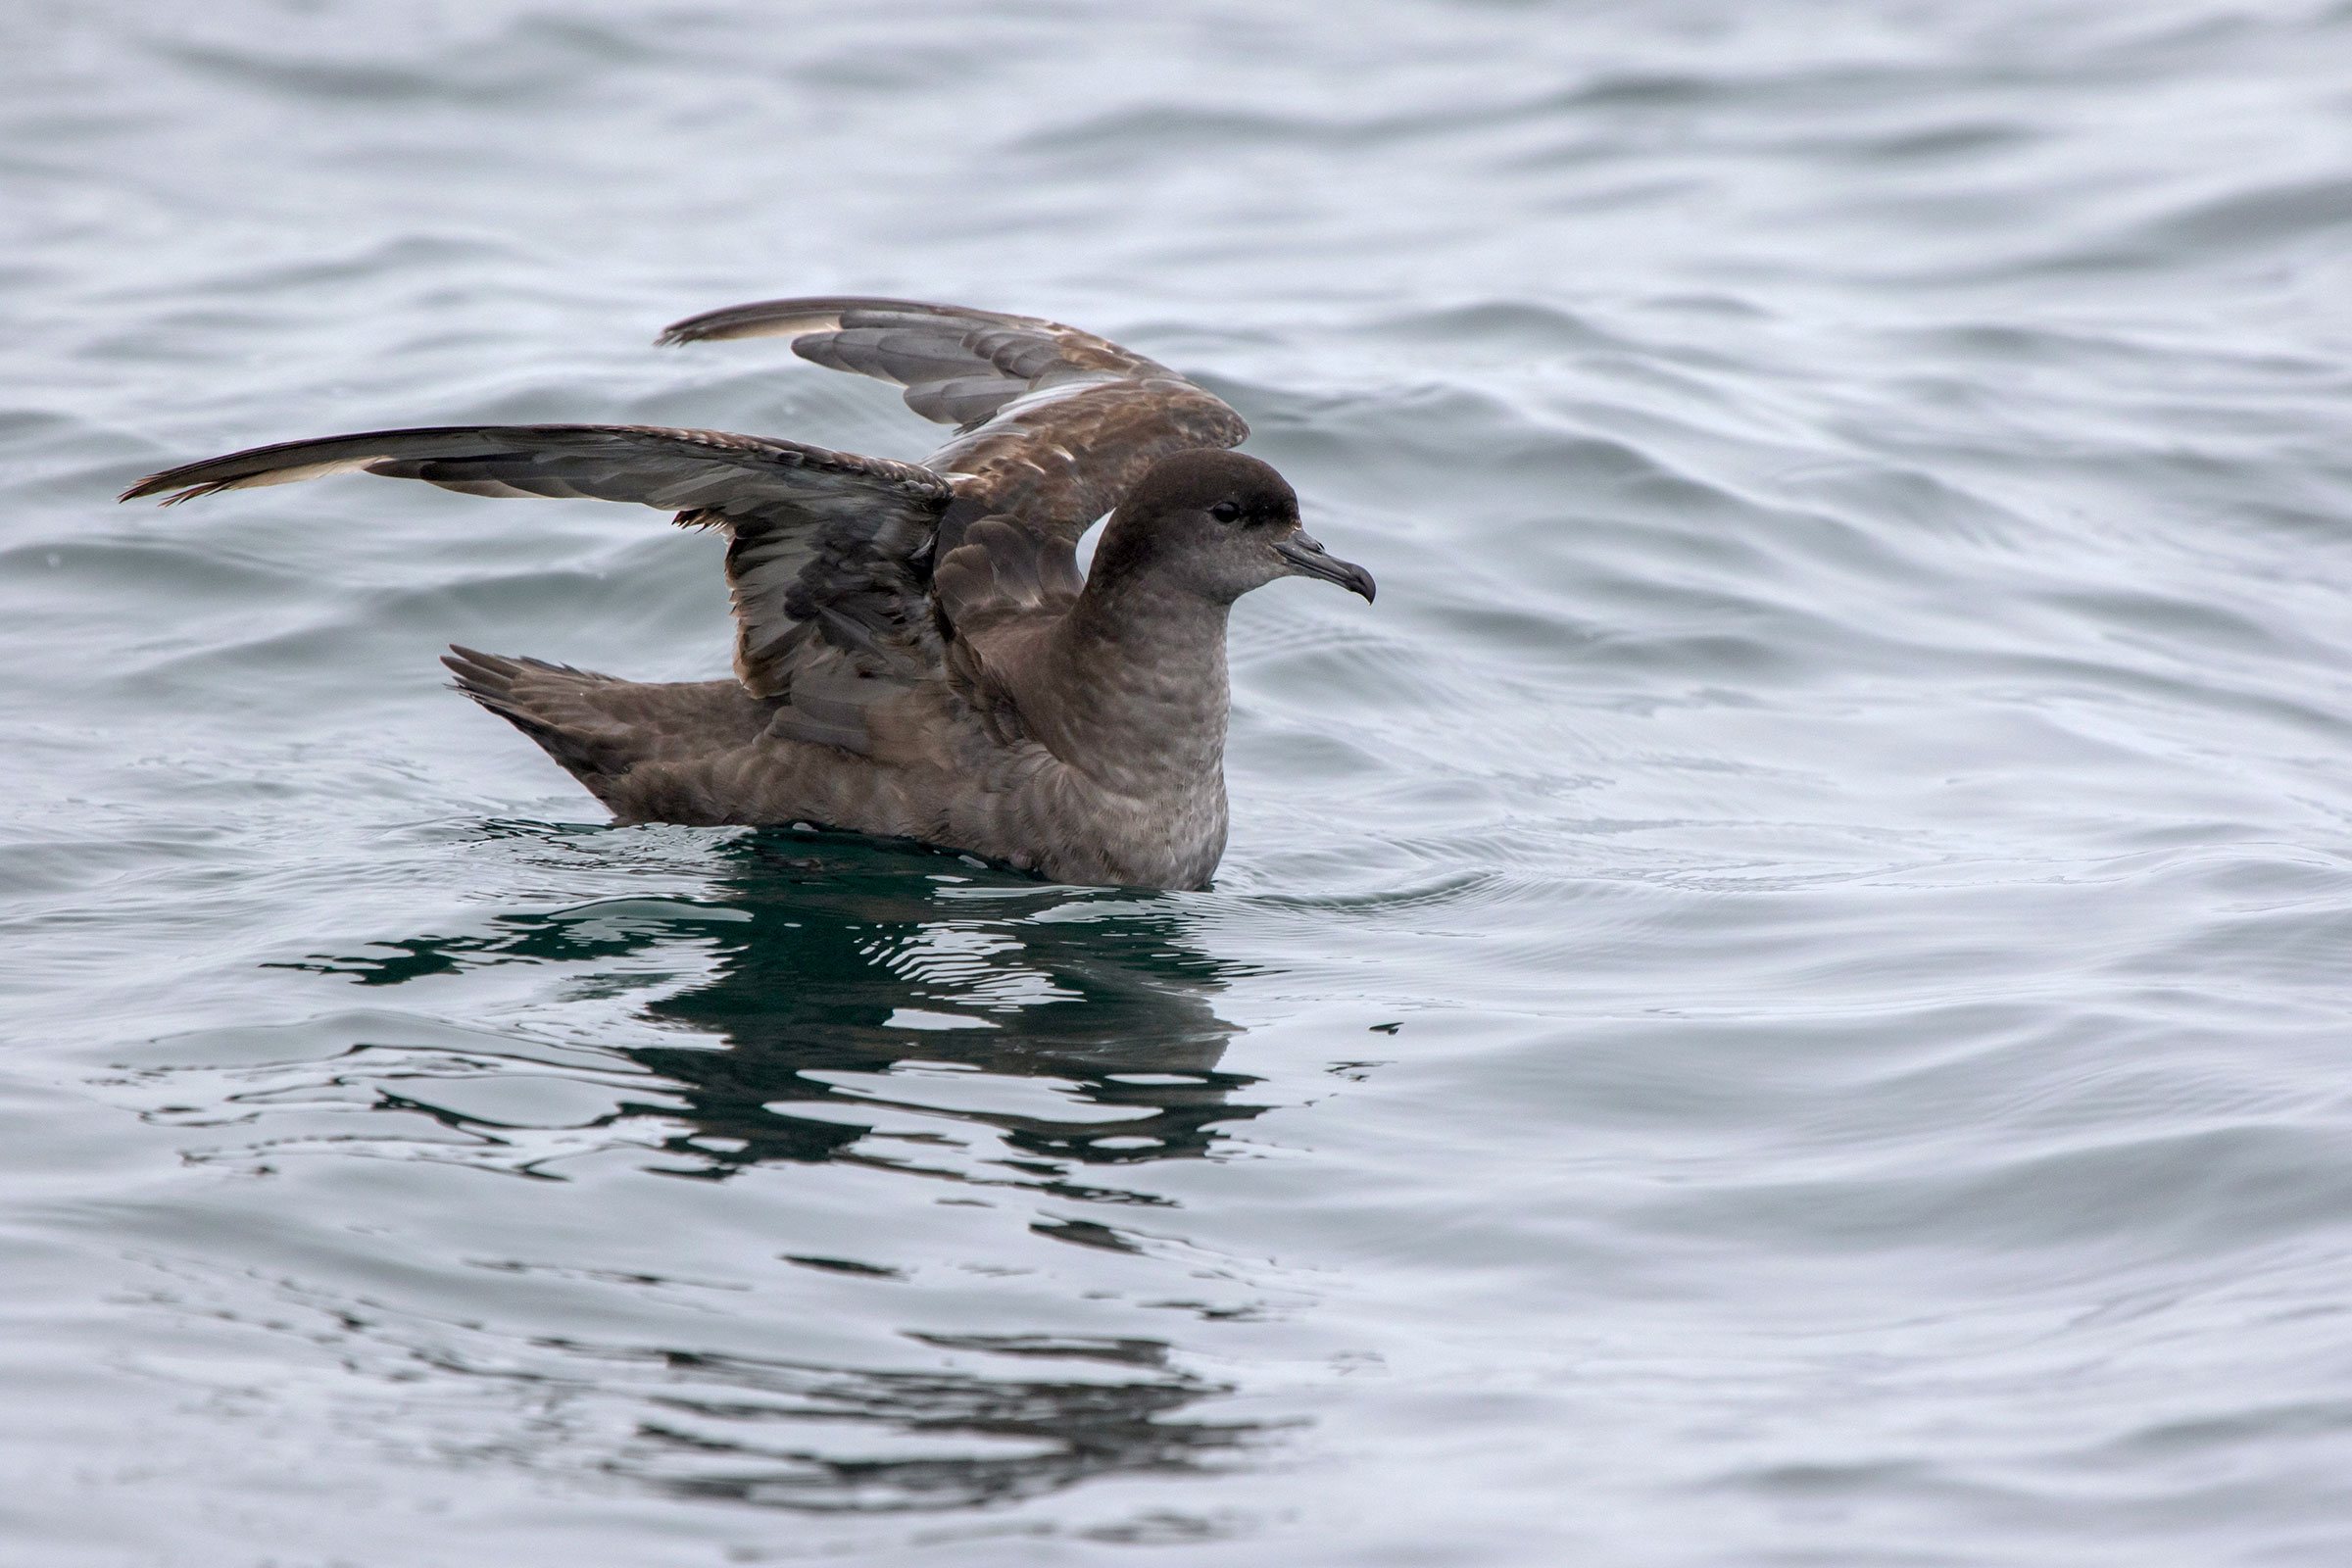 Short-tailed Shearwater in the Bering Sea. Photo: Dmytro Pylypenko/Alamy